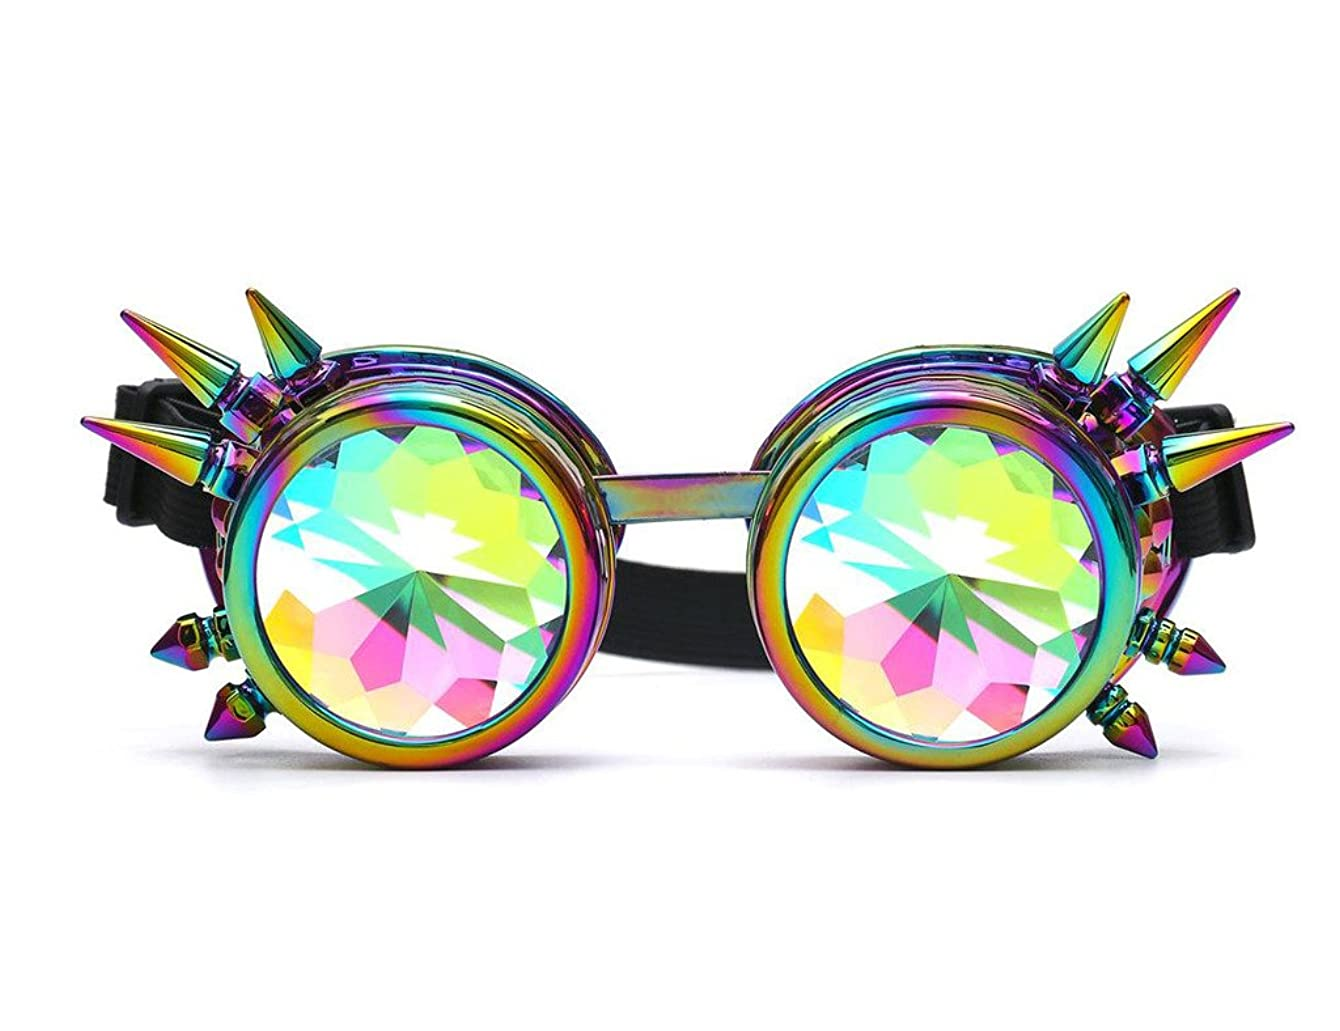 FUT ABS Rainbow Spiked Steampunk Goggles Kaleidoscope Rave Lenses Cyber Welding Goth Cosplay Vintage Goggles